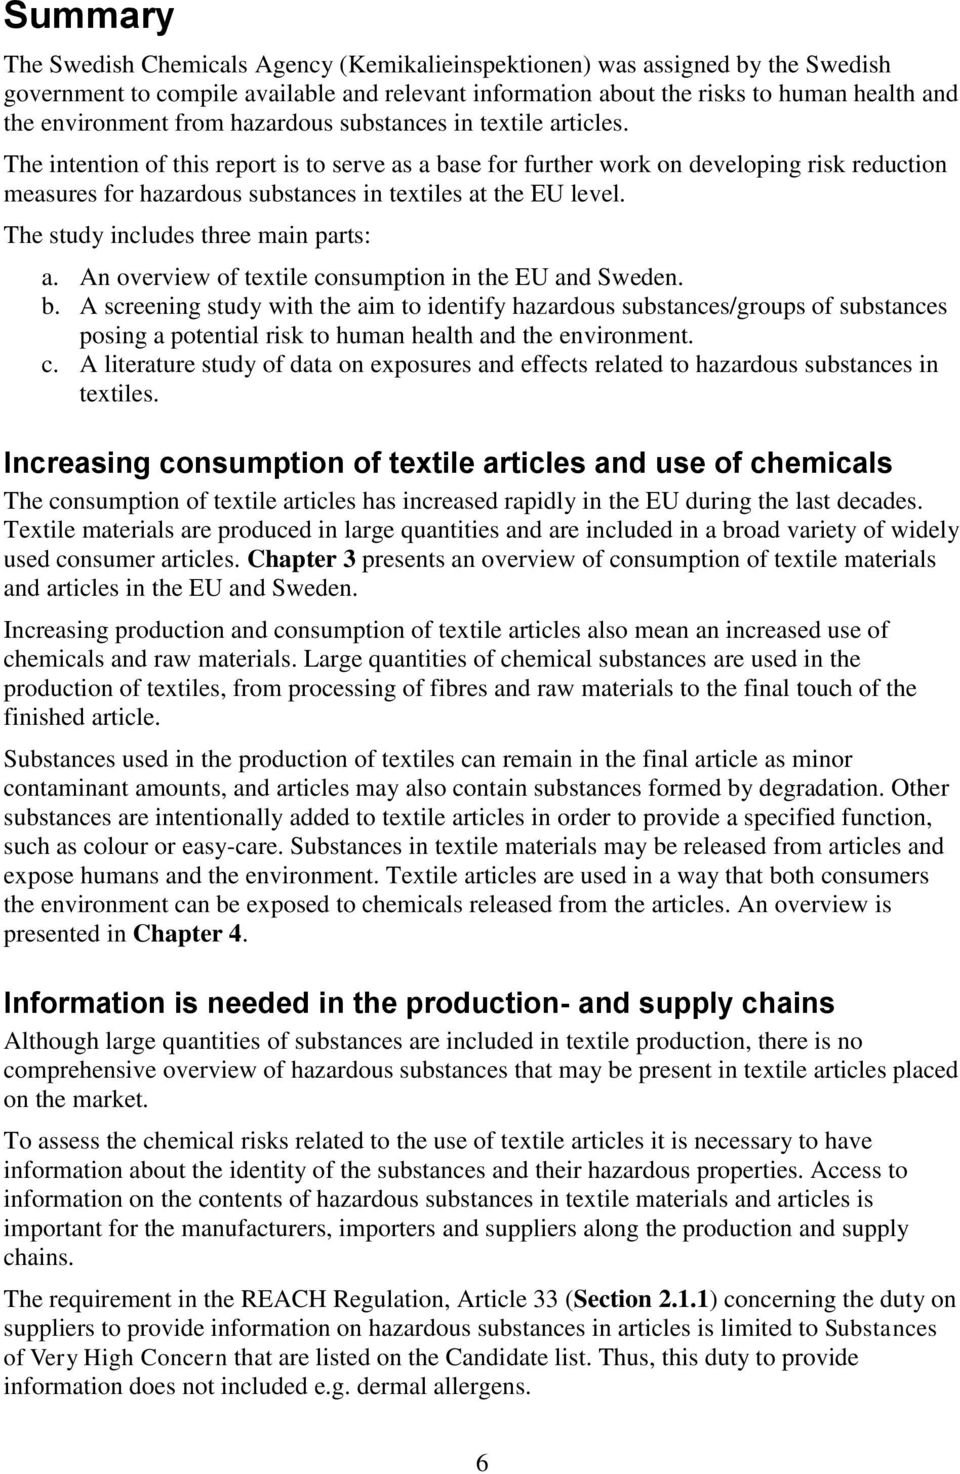 The intention of this report is to serve as a base for further work on developing risk reduction measures for hazardous substances in textiles at the EU level. The study includes three main parts: a.